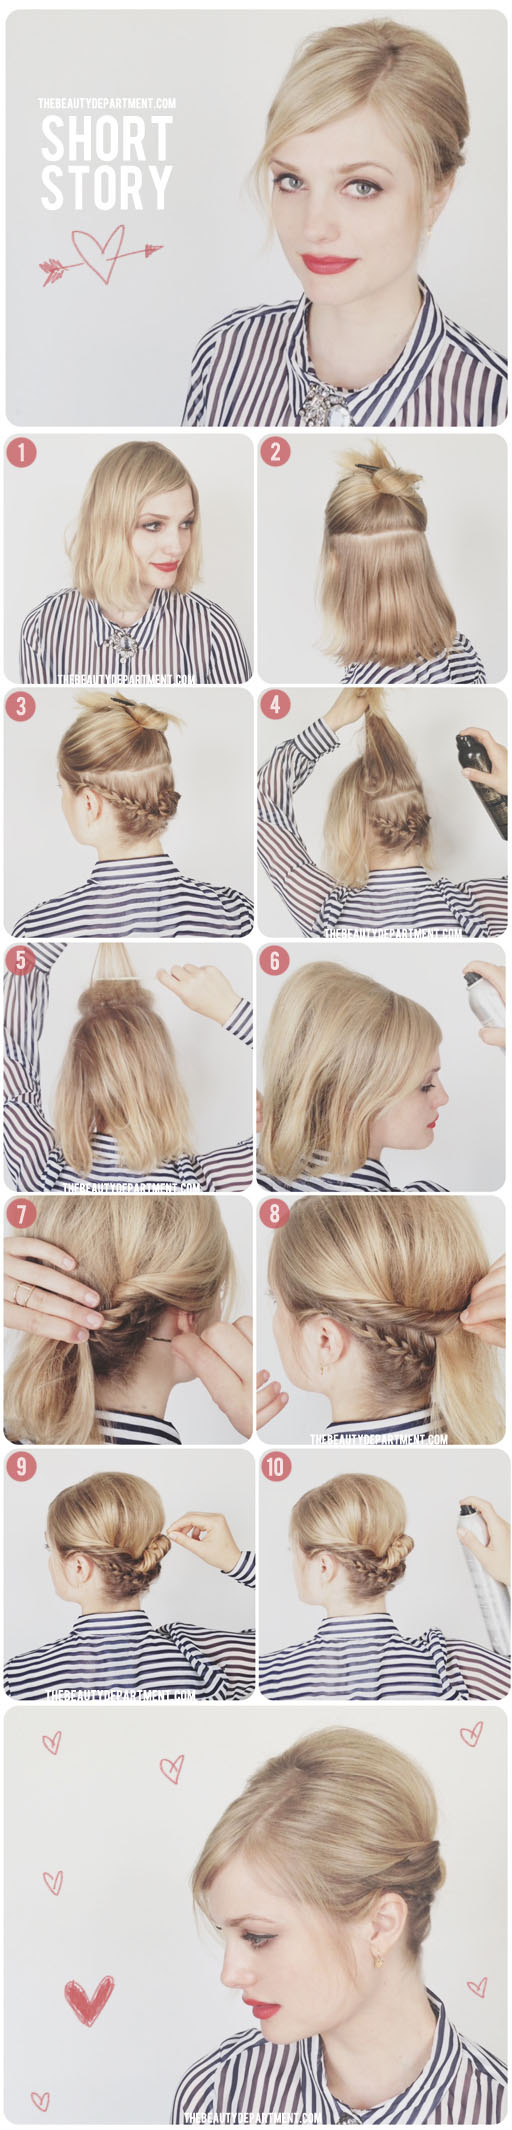 hair tutorials for short hair - fashionsy